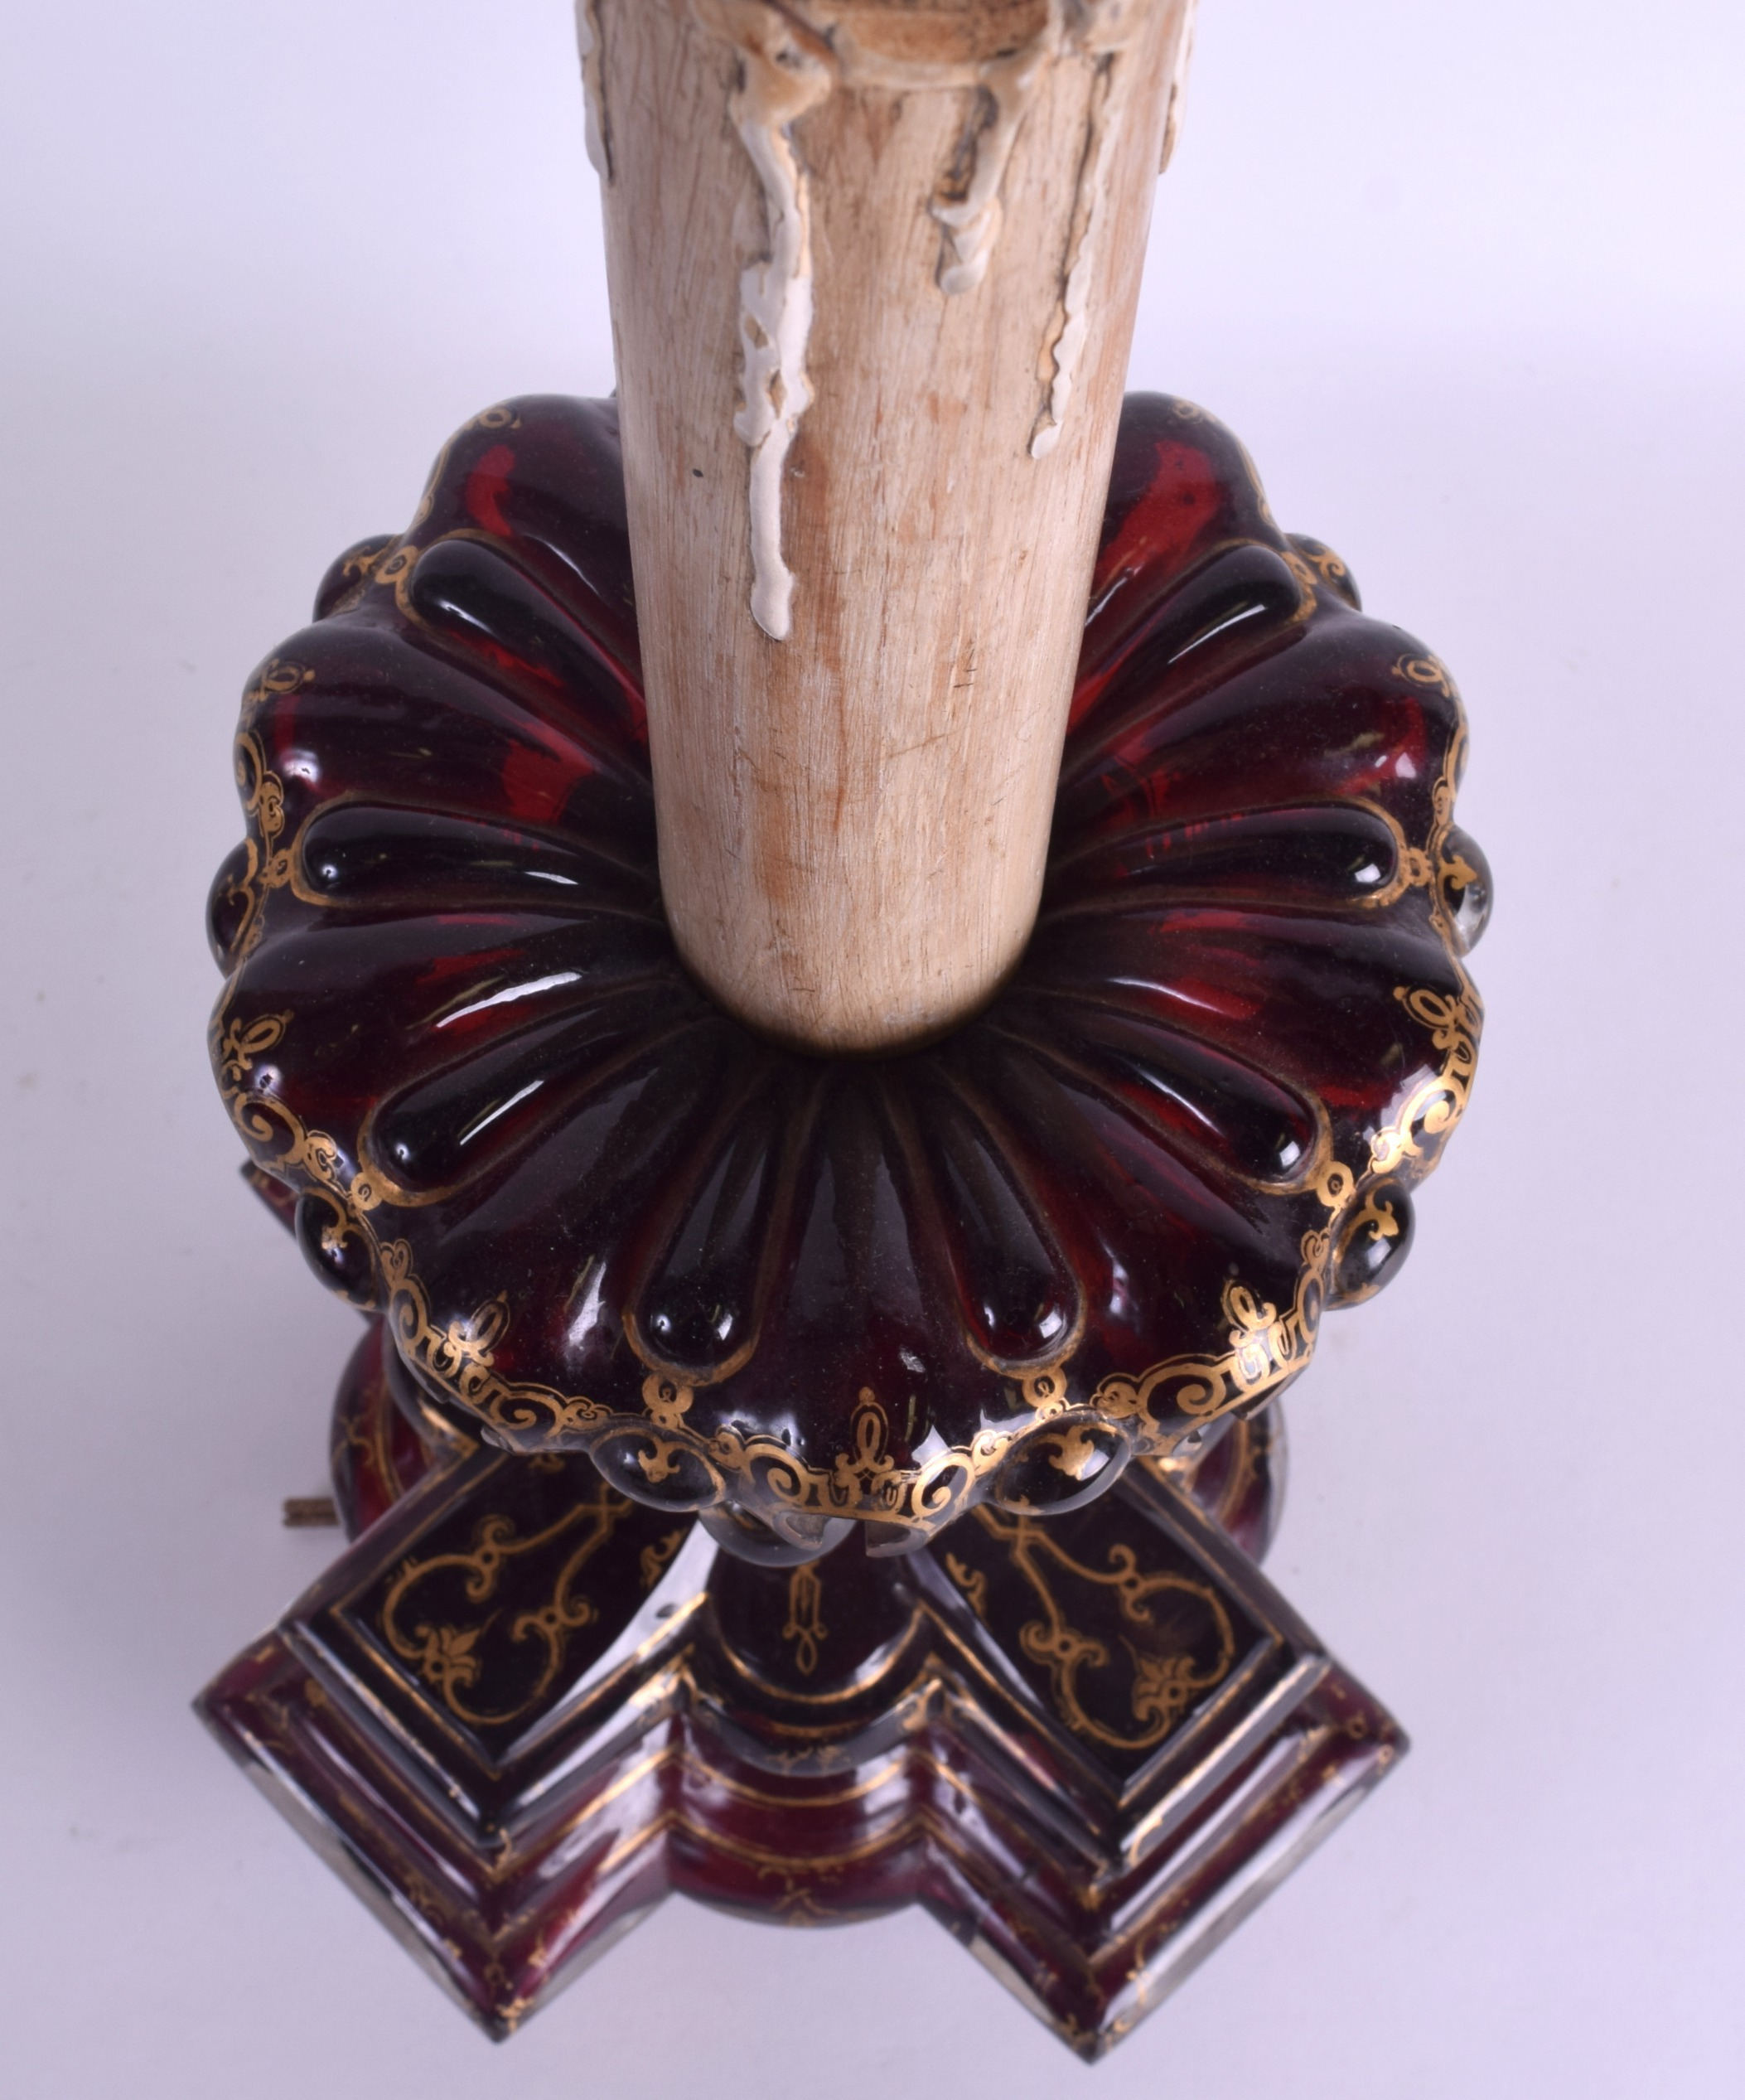 Lot 6 - A RARE LARGE 19TH CENTURY BOHEMIAN RUBY GLASS CANDLESTICK of highly unusual form, overlaid with